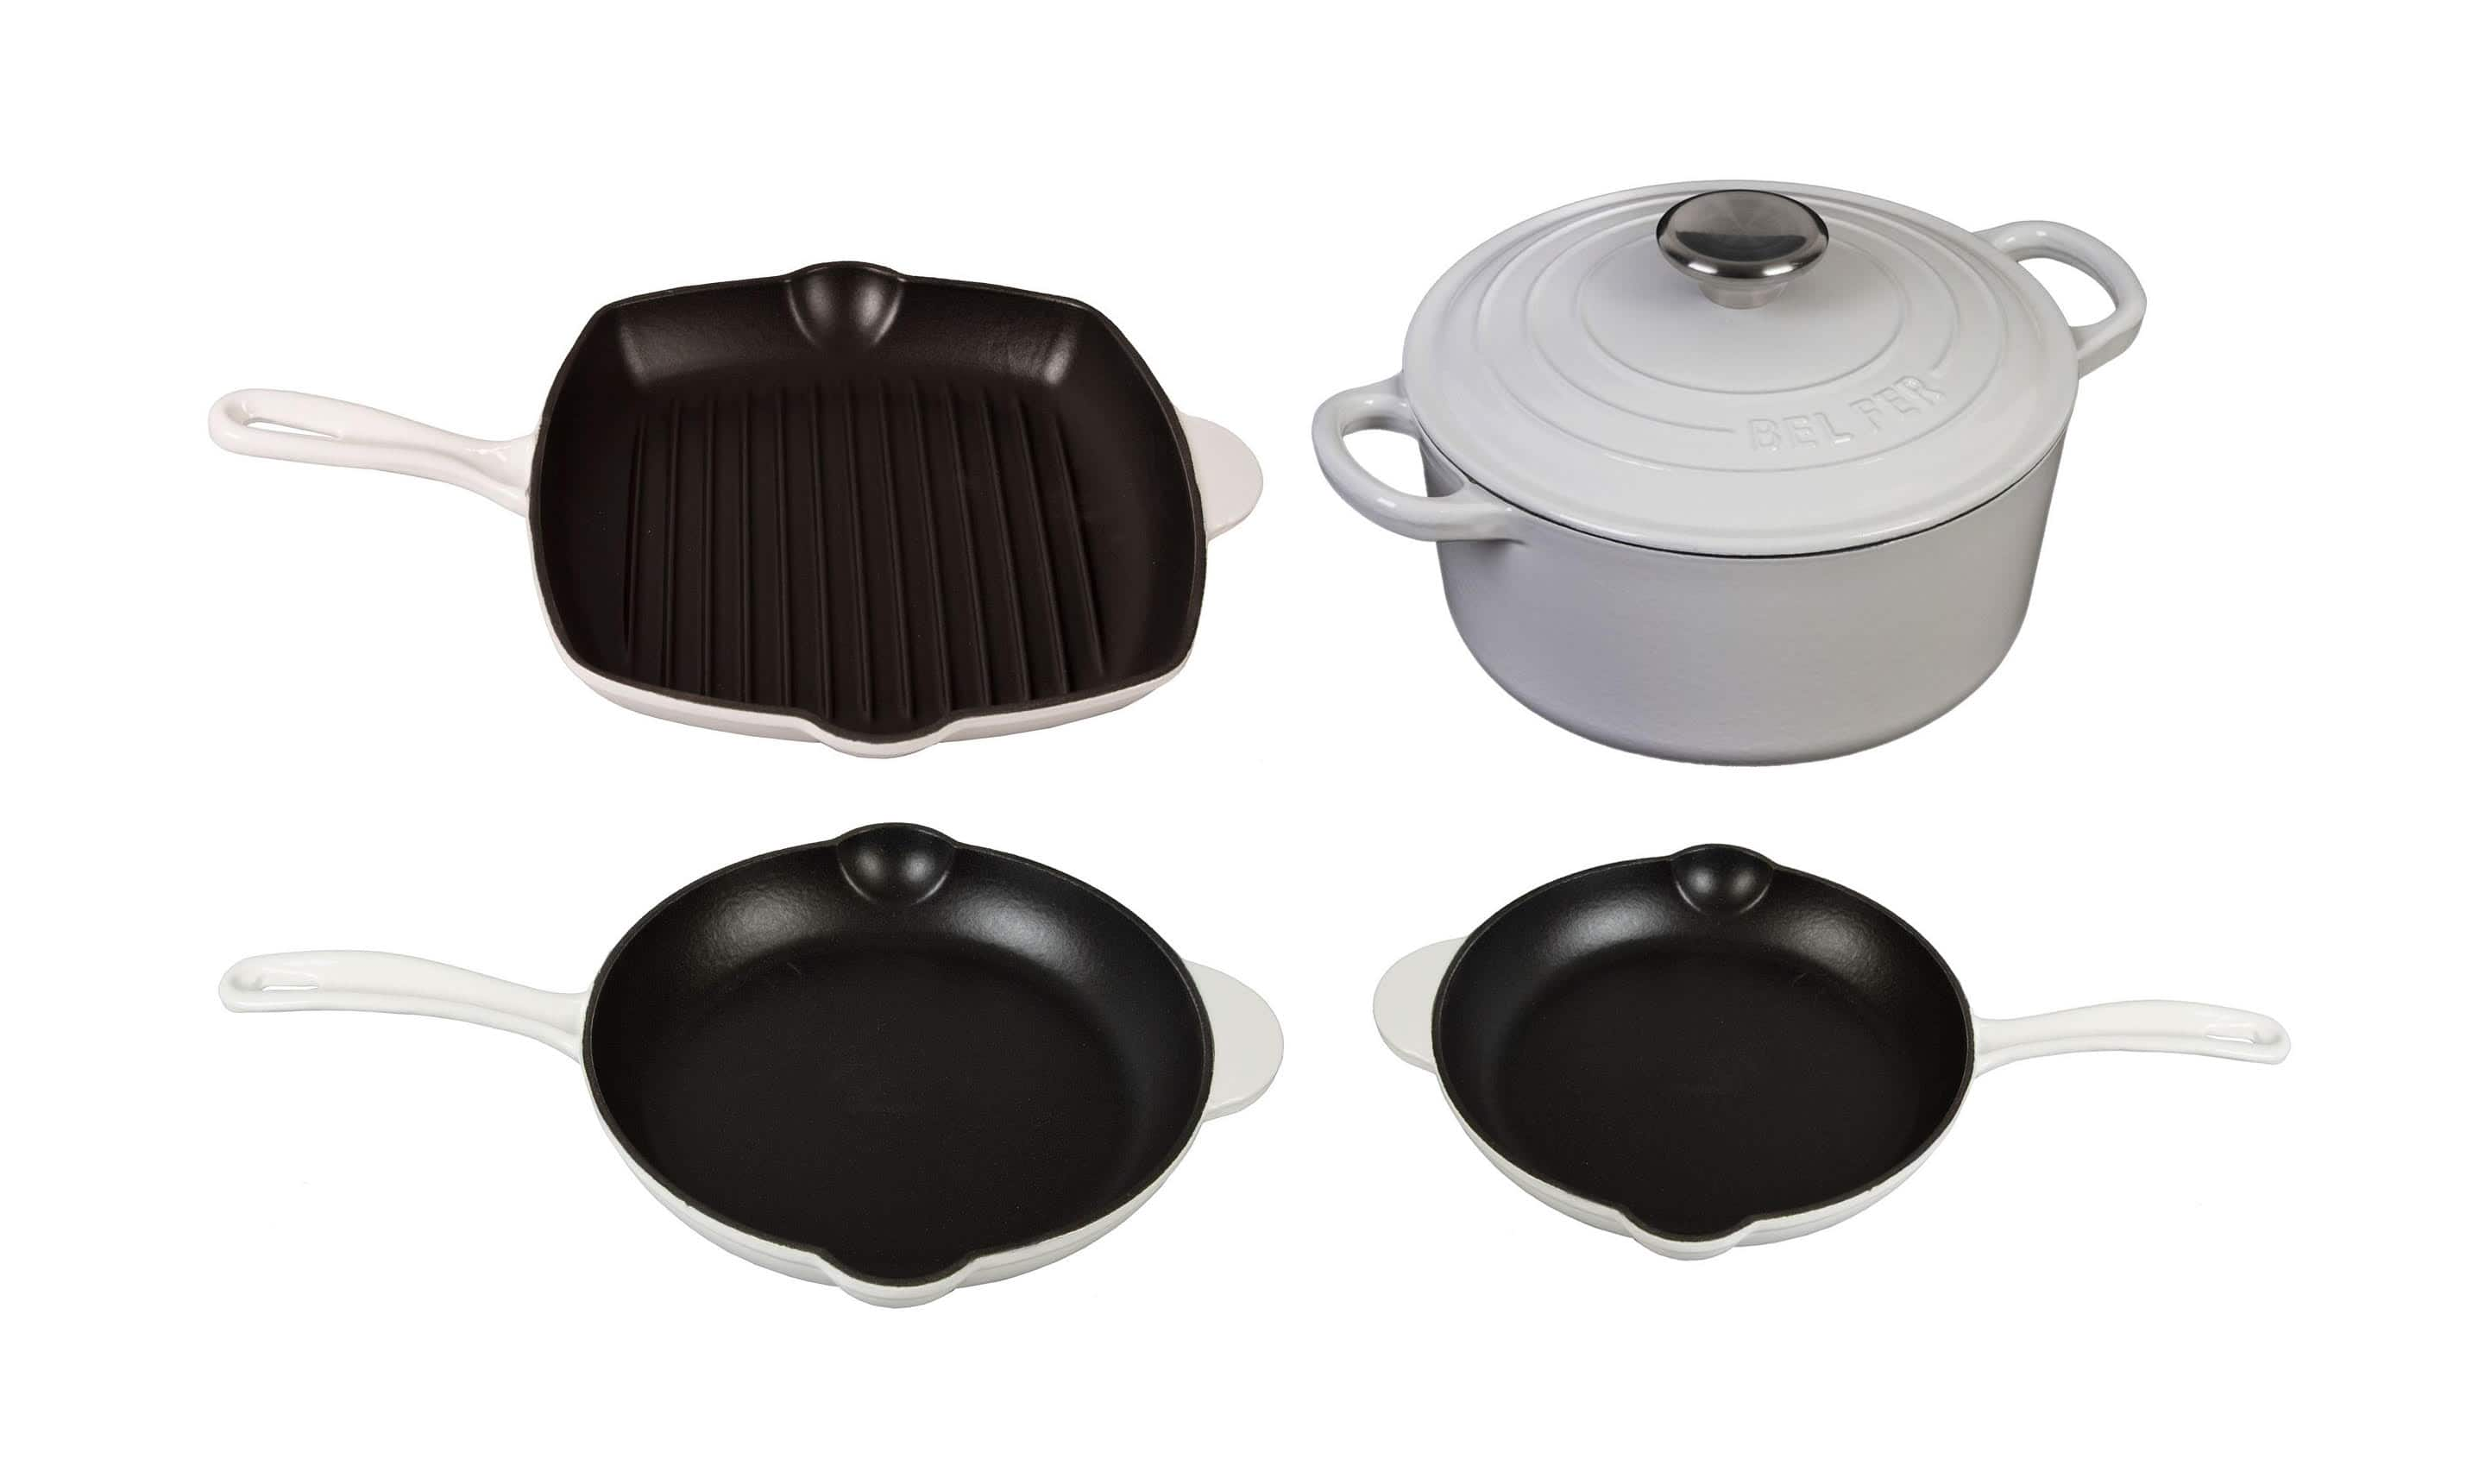 Inspired Home 5-Piece White Enameled Cast Iron Cookware Set : $87.99 AC + FS